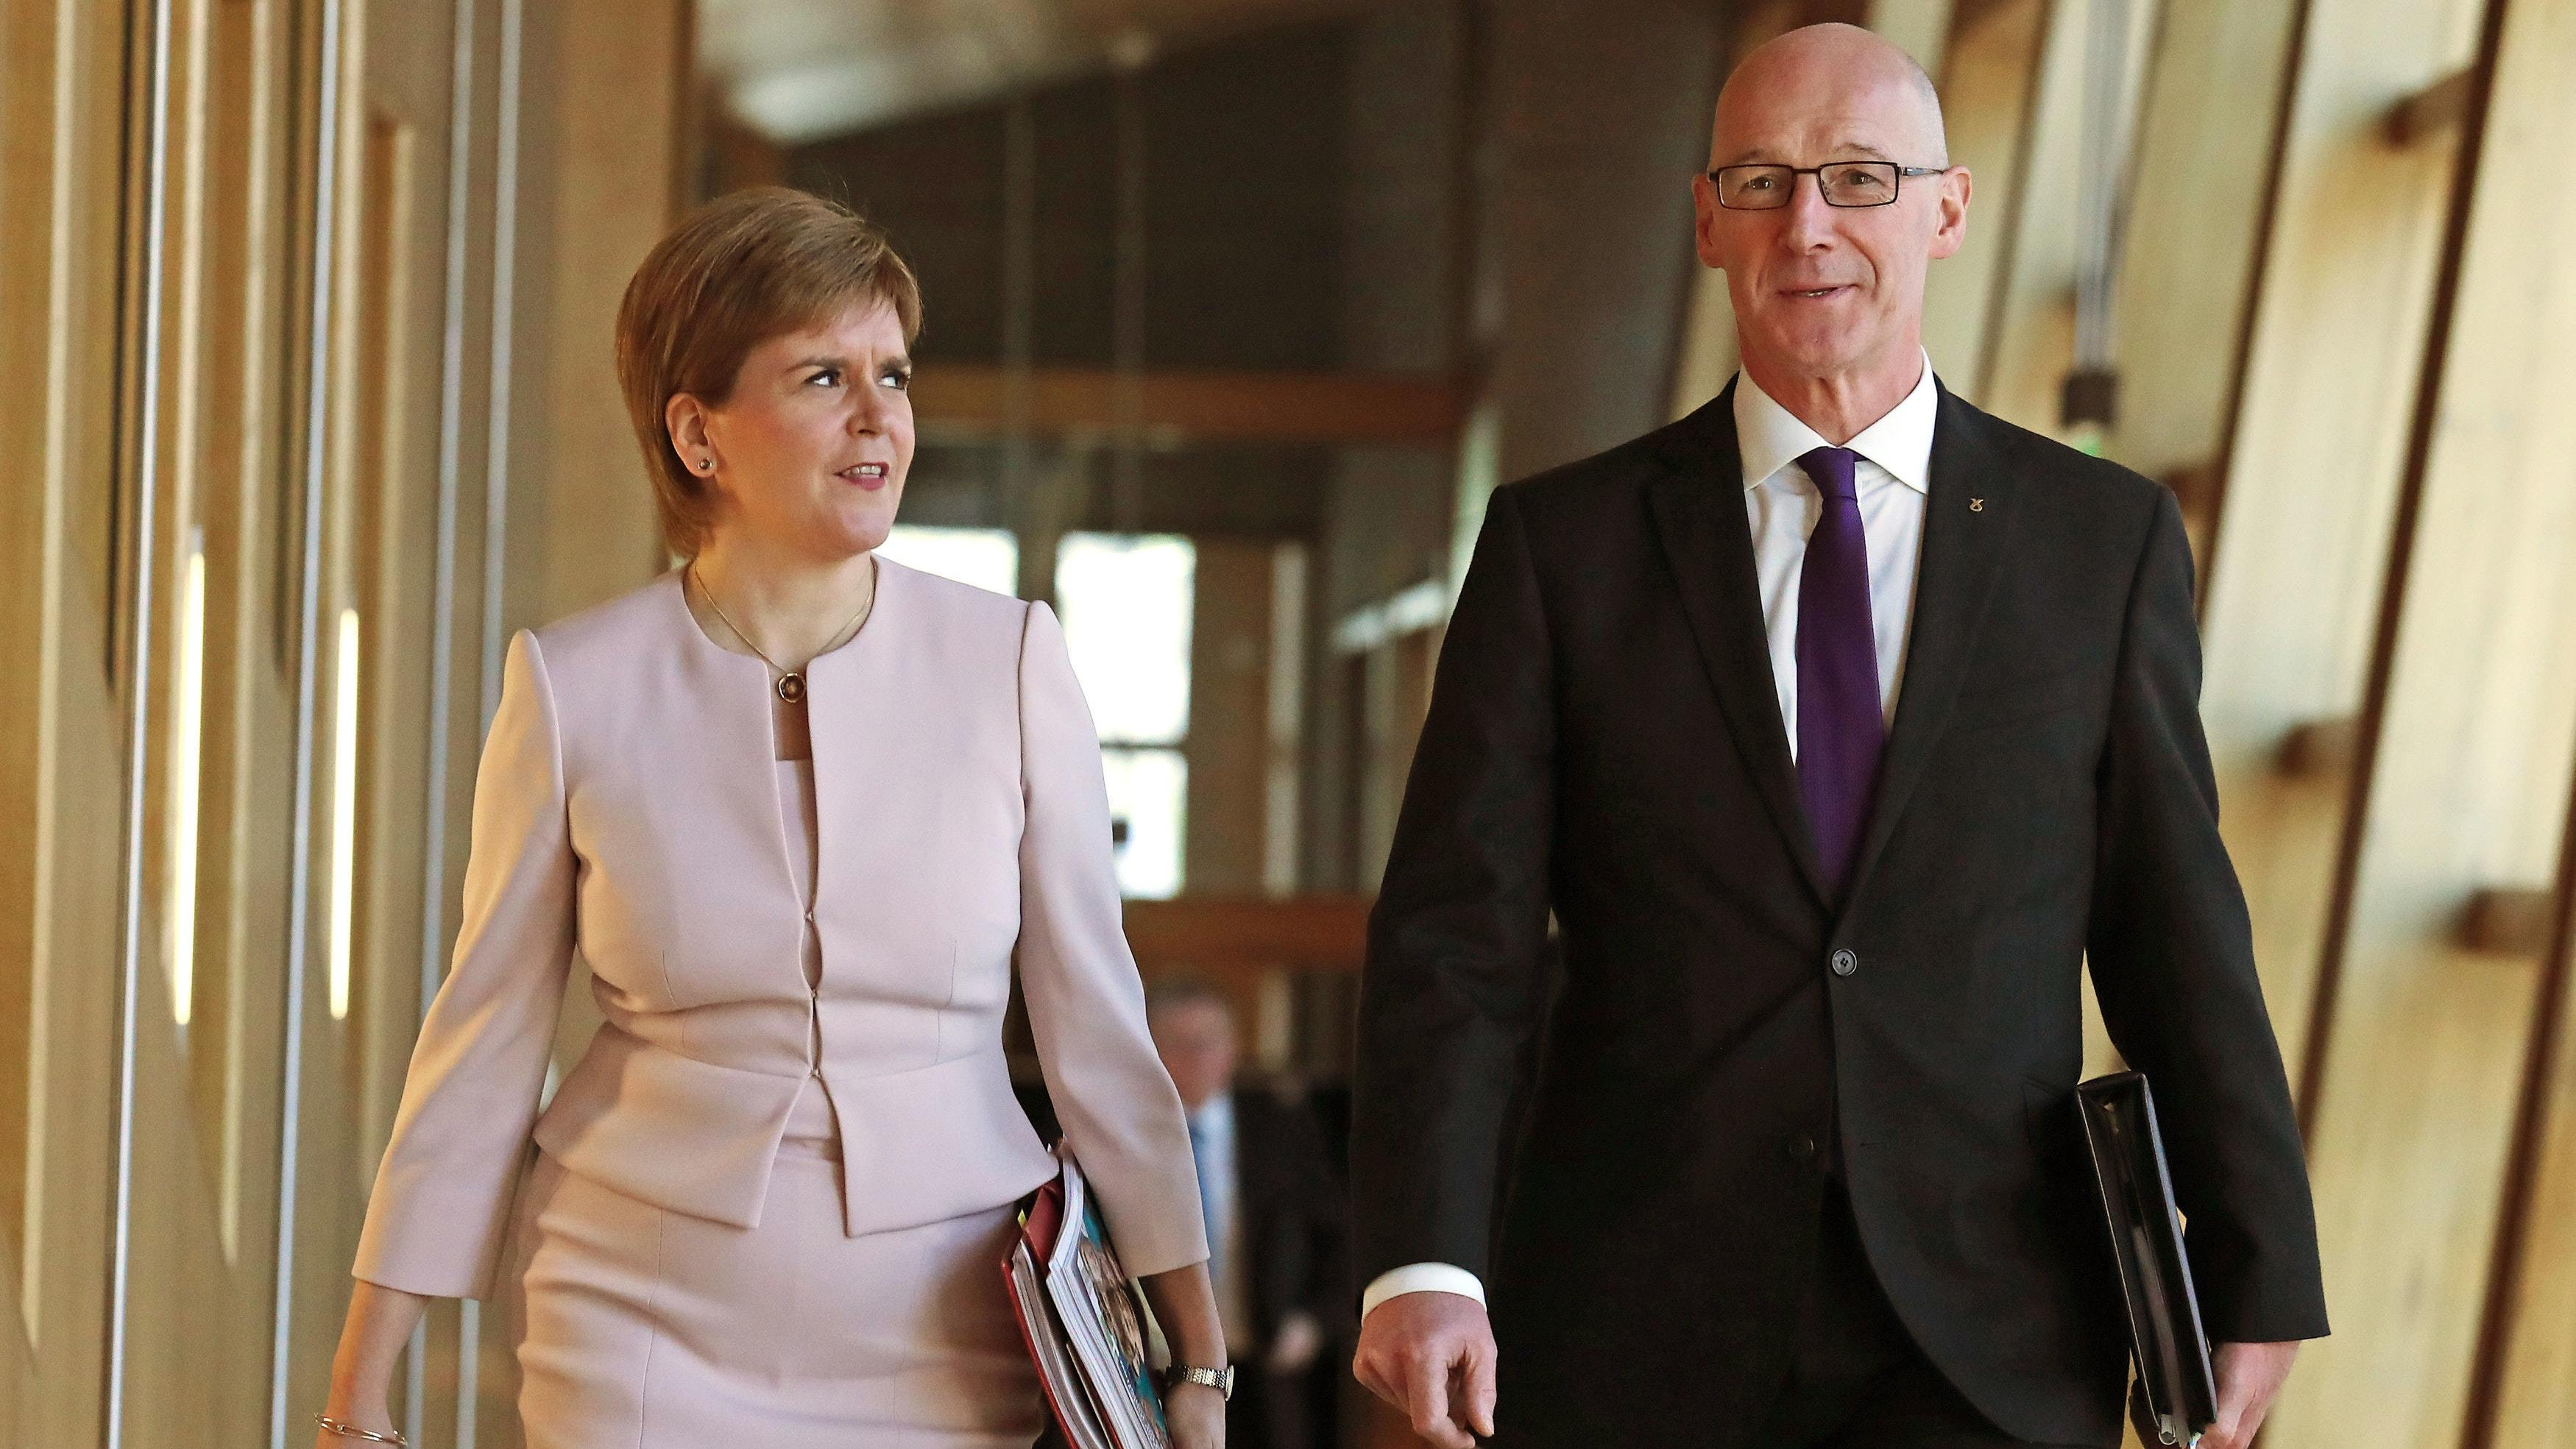 Nicola Sturgeon and John Swinney (PA)